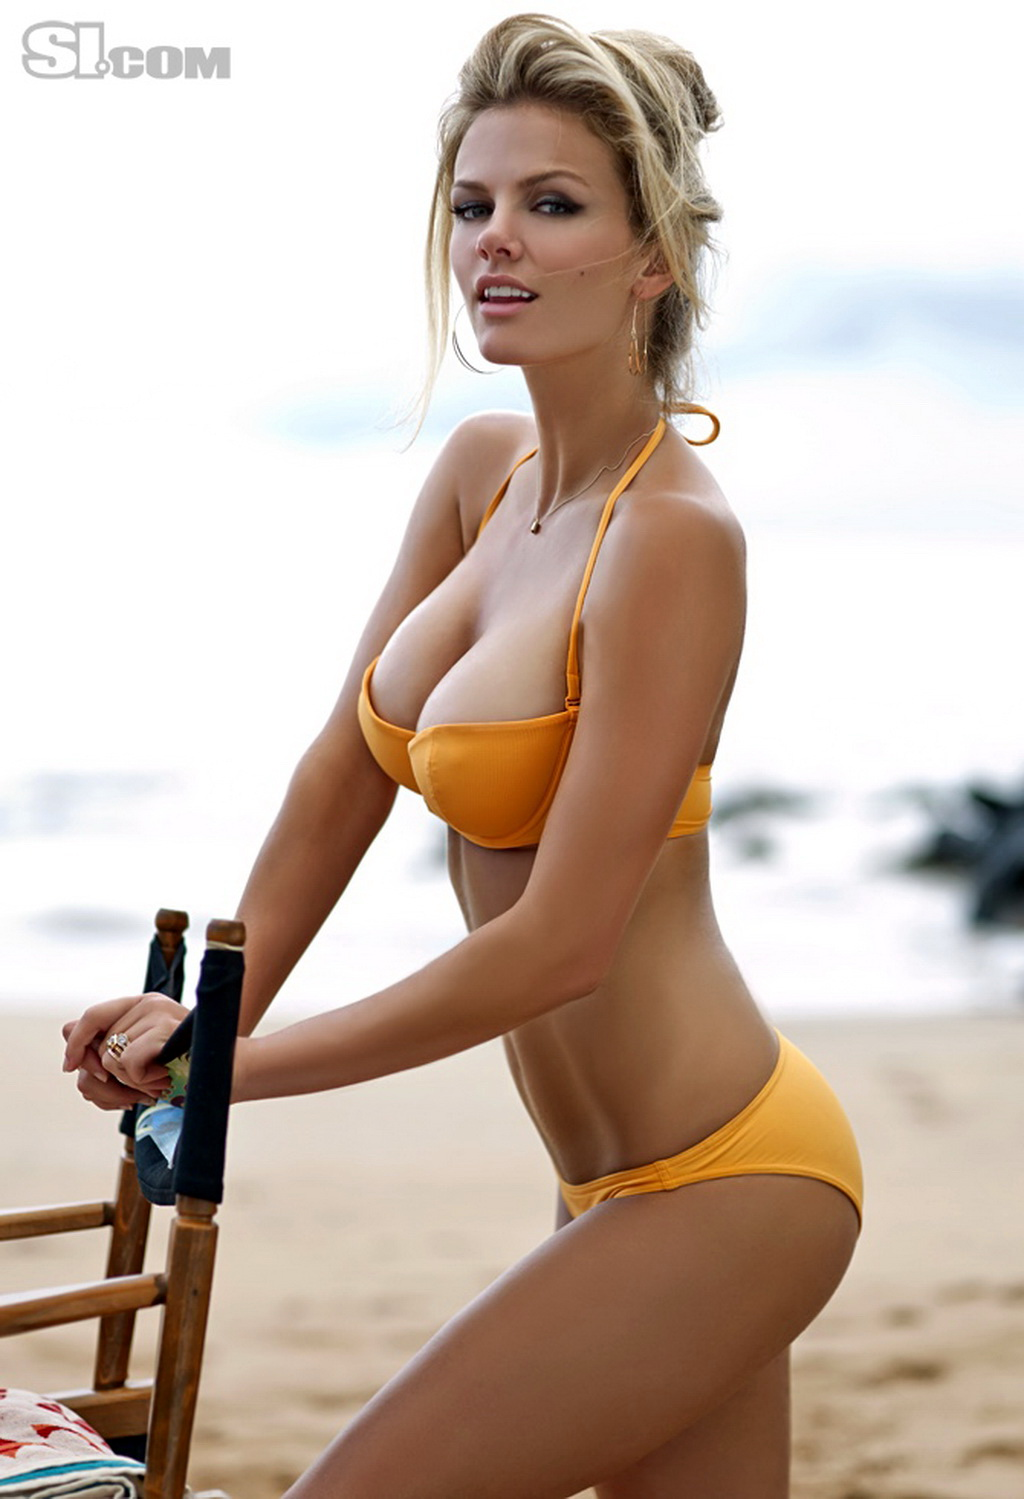 Brooklyn Decker topless hiding her big boobs for Sports Illustrated ...